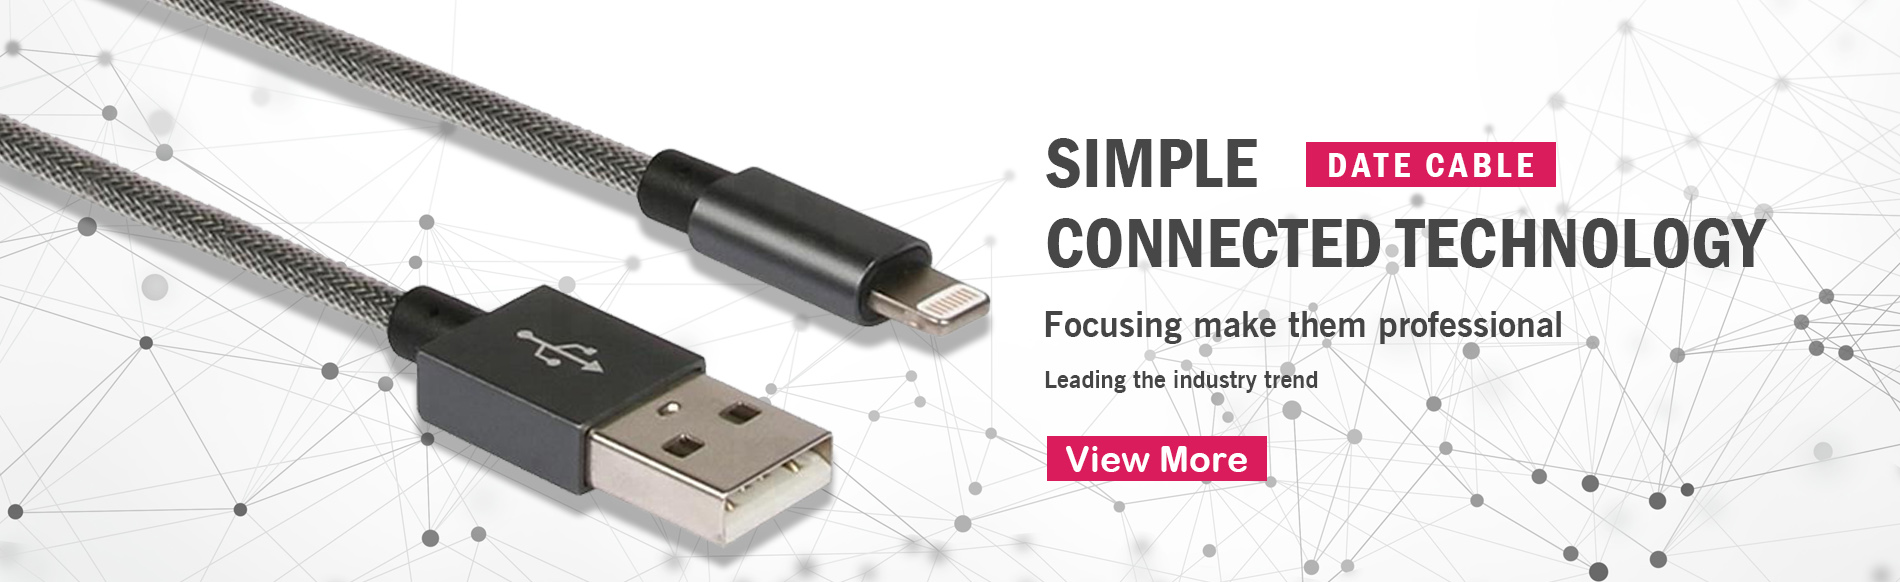 USB cables manufacturer